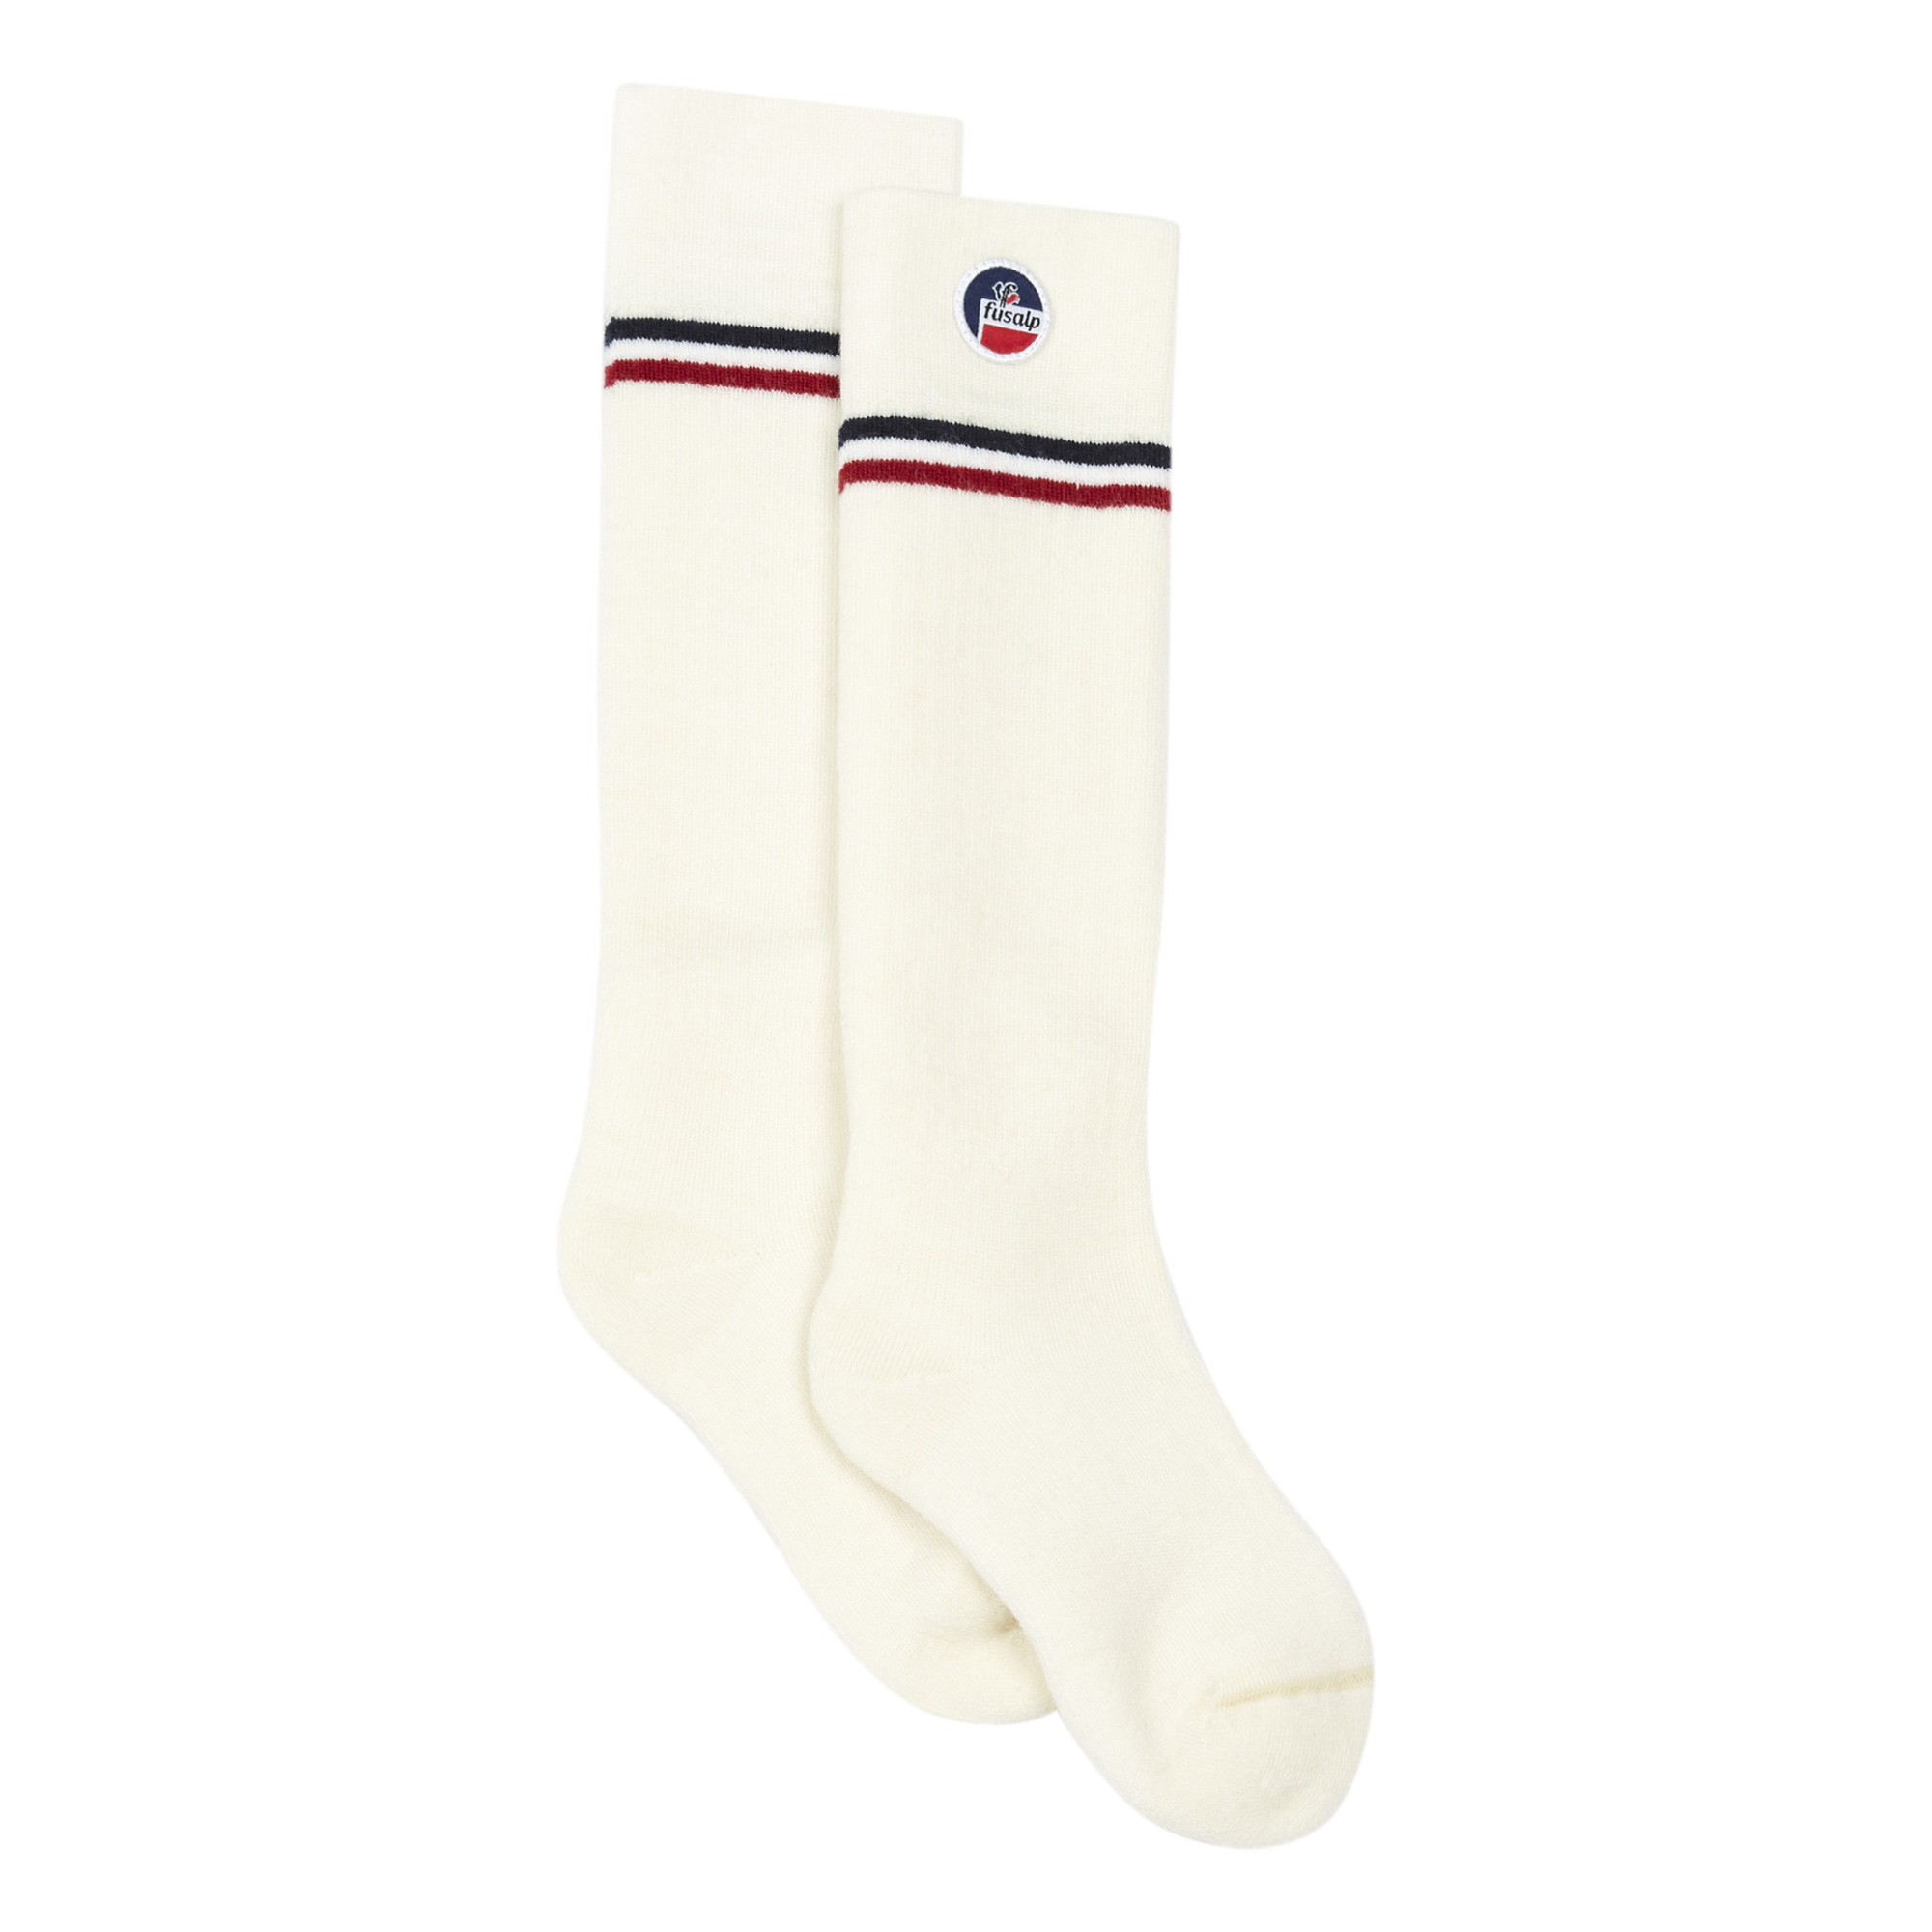 Chaussettes Lodge - Collection Femme -